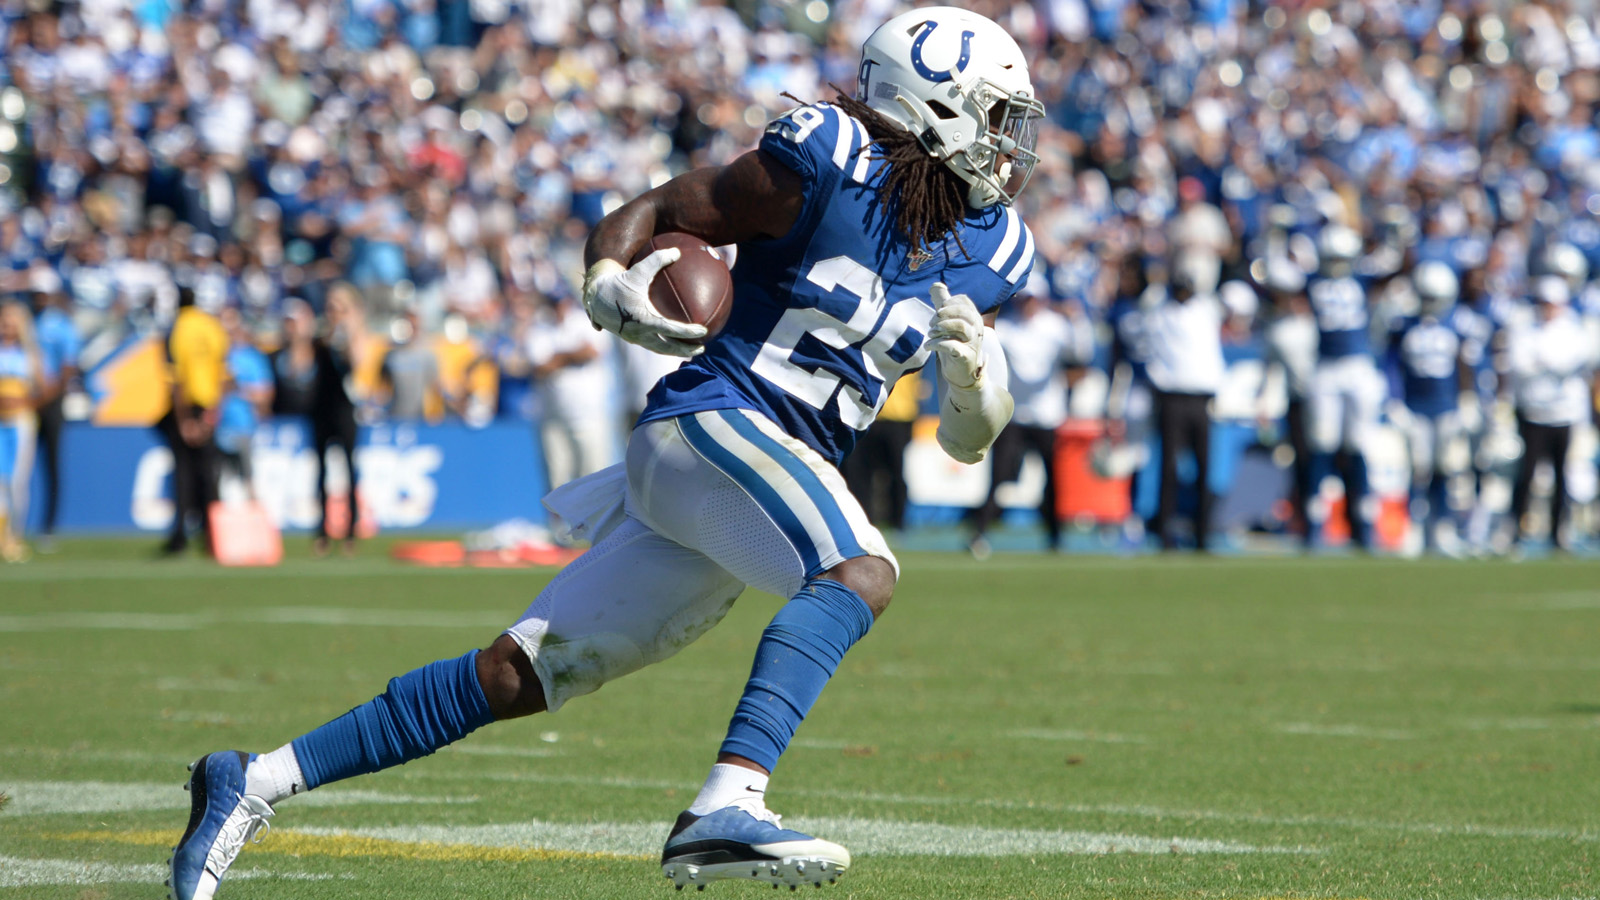 Colts' Hooker to miss four to six weeks with torn meniscus